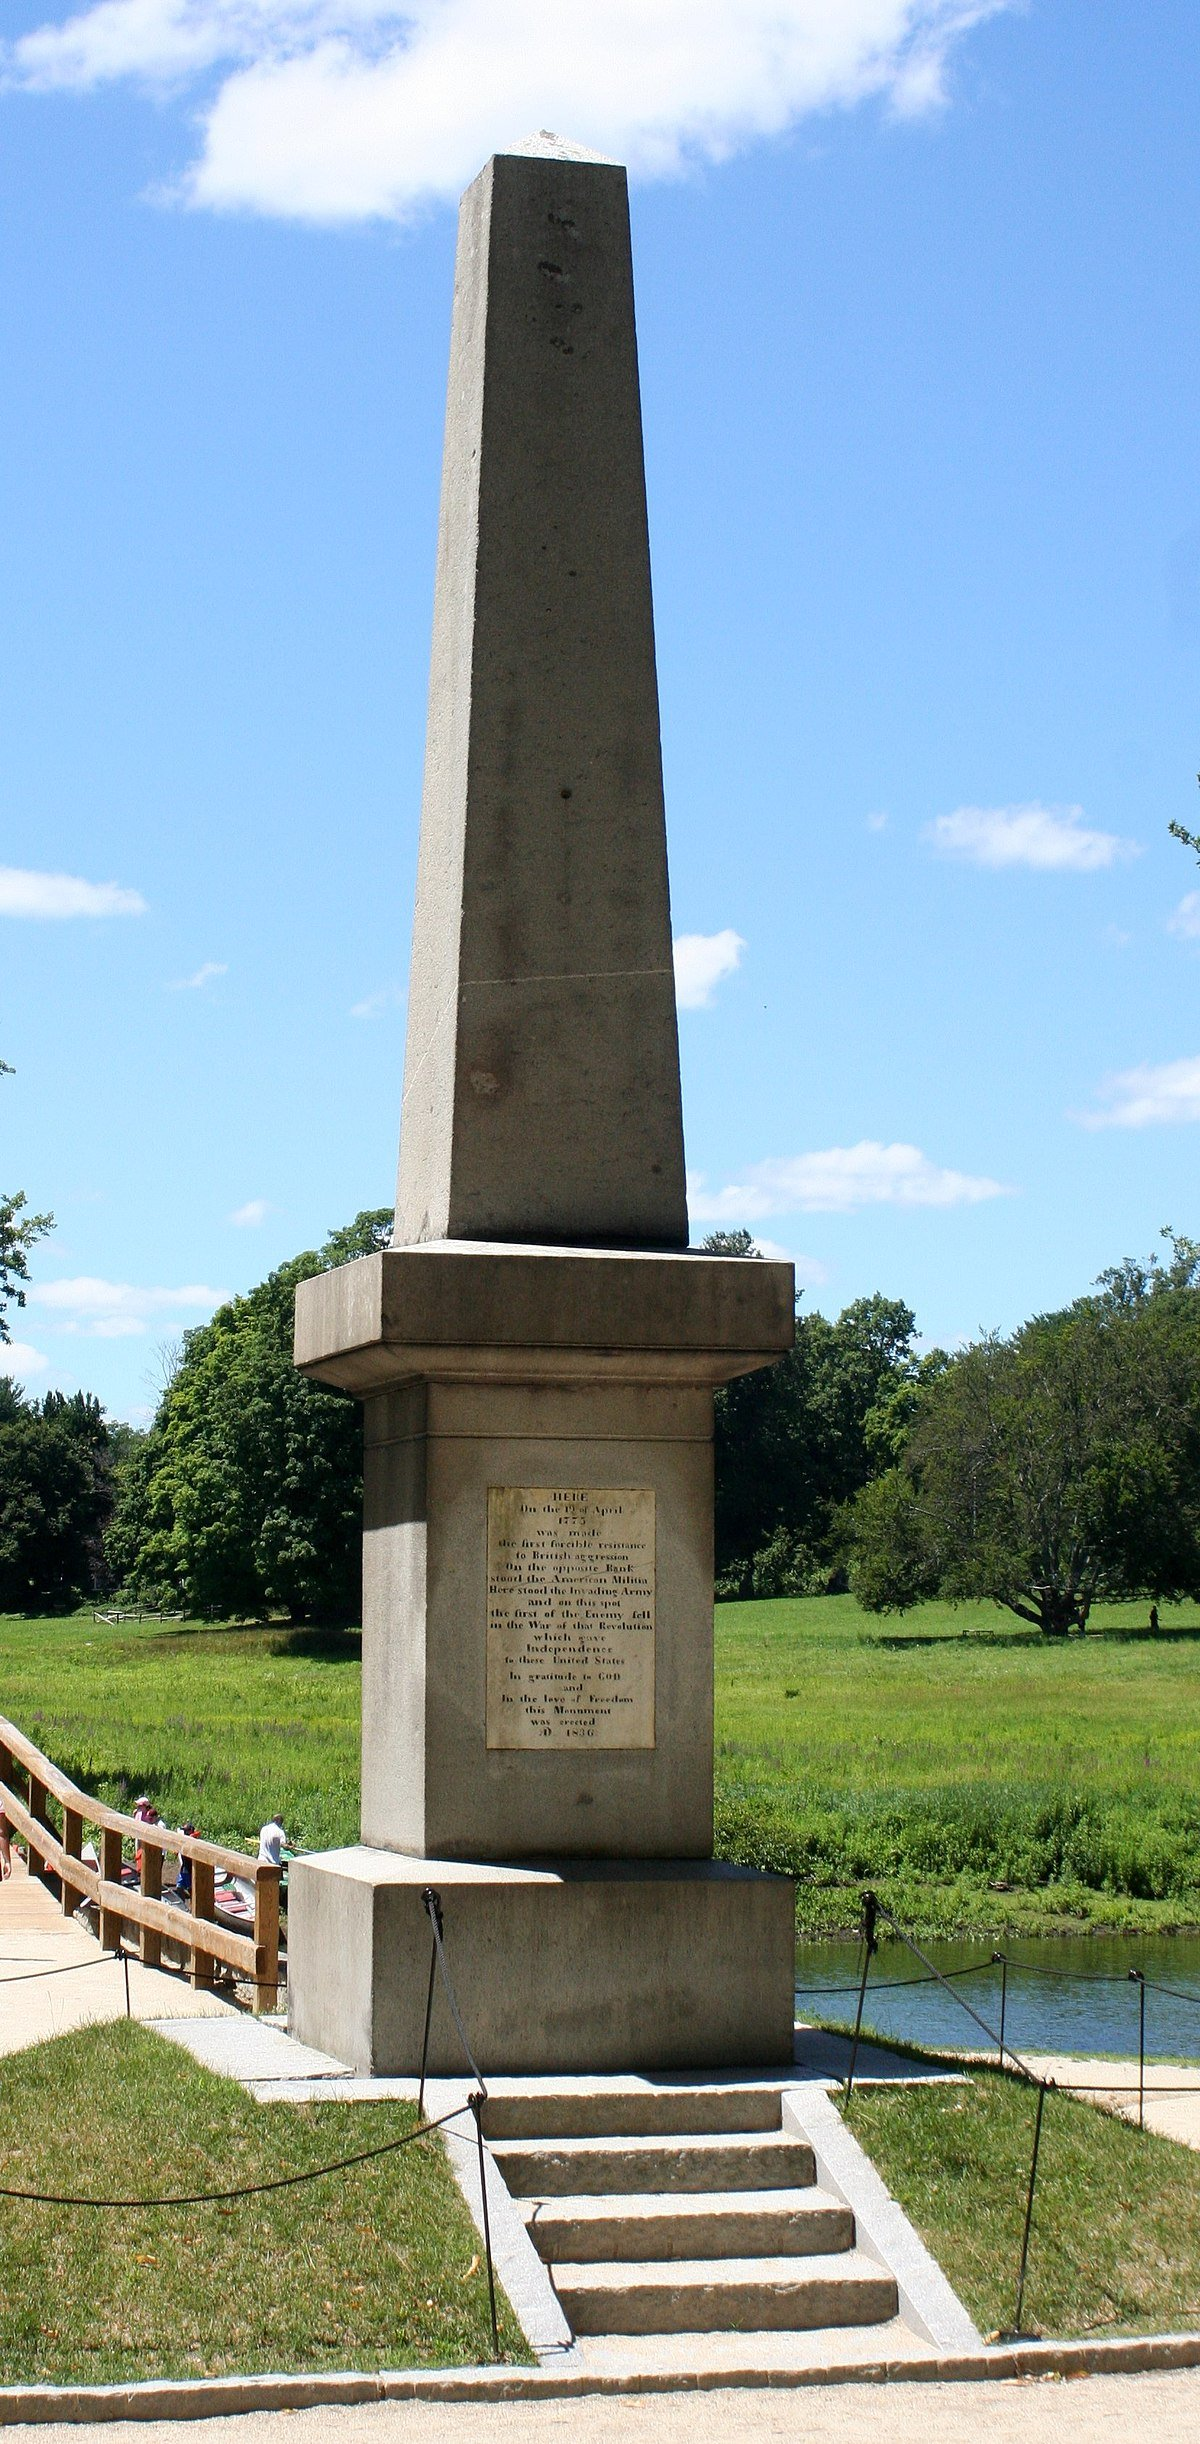 The memorial stands on the eastern side of the Old North Bridge. The inscription is visible at the base of the monument.